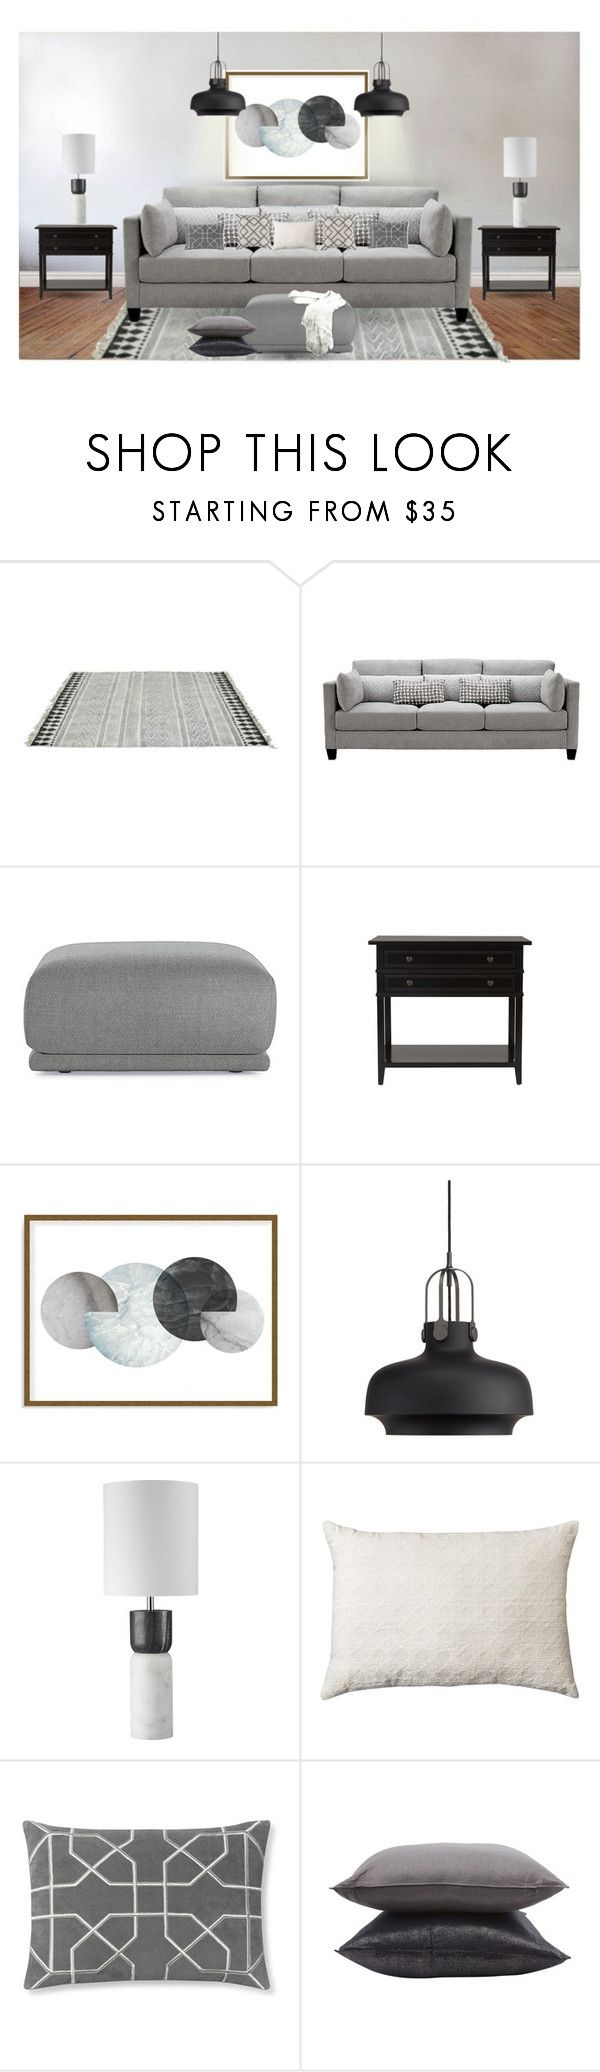 """Untitled #1111"" by rachelbarkho ❤ liked on Polyvore featuring interior, interiors, interior design, home, home decor, interior decorating, Ross & Brown, Design Within Reach, Jayson Home and Art Addiction"